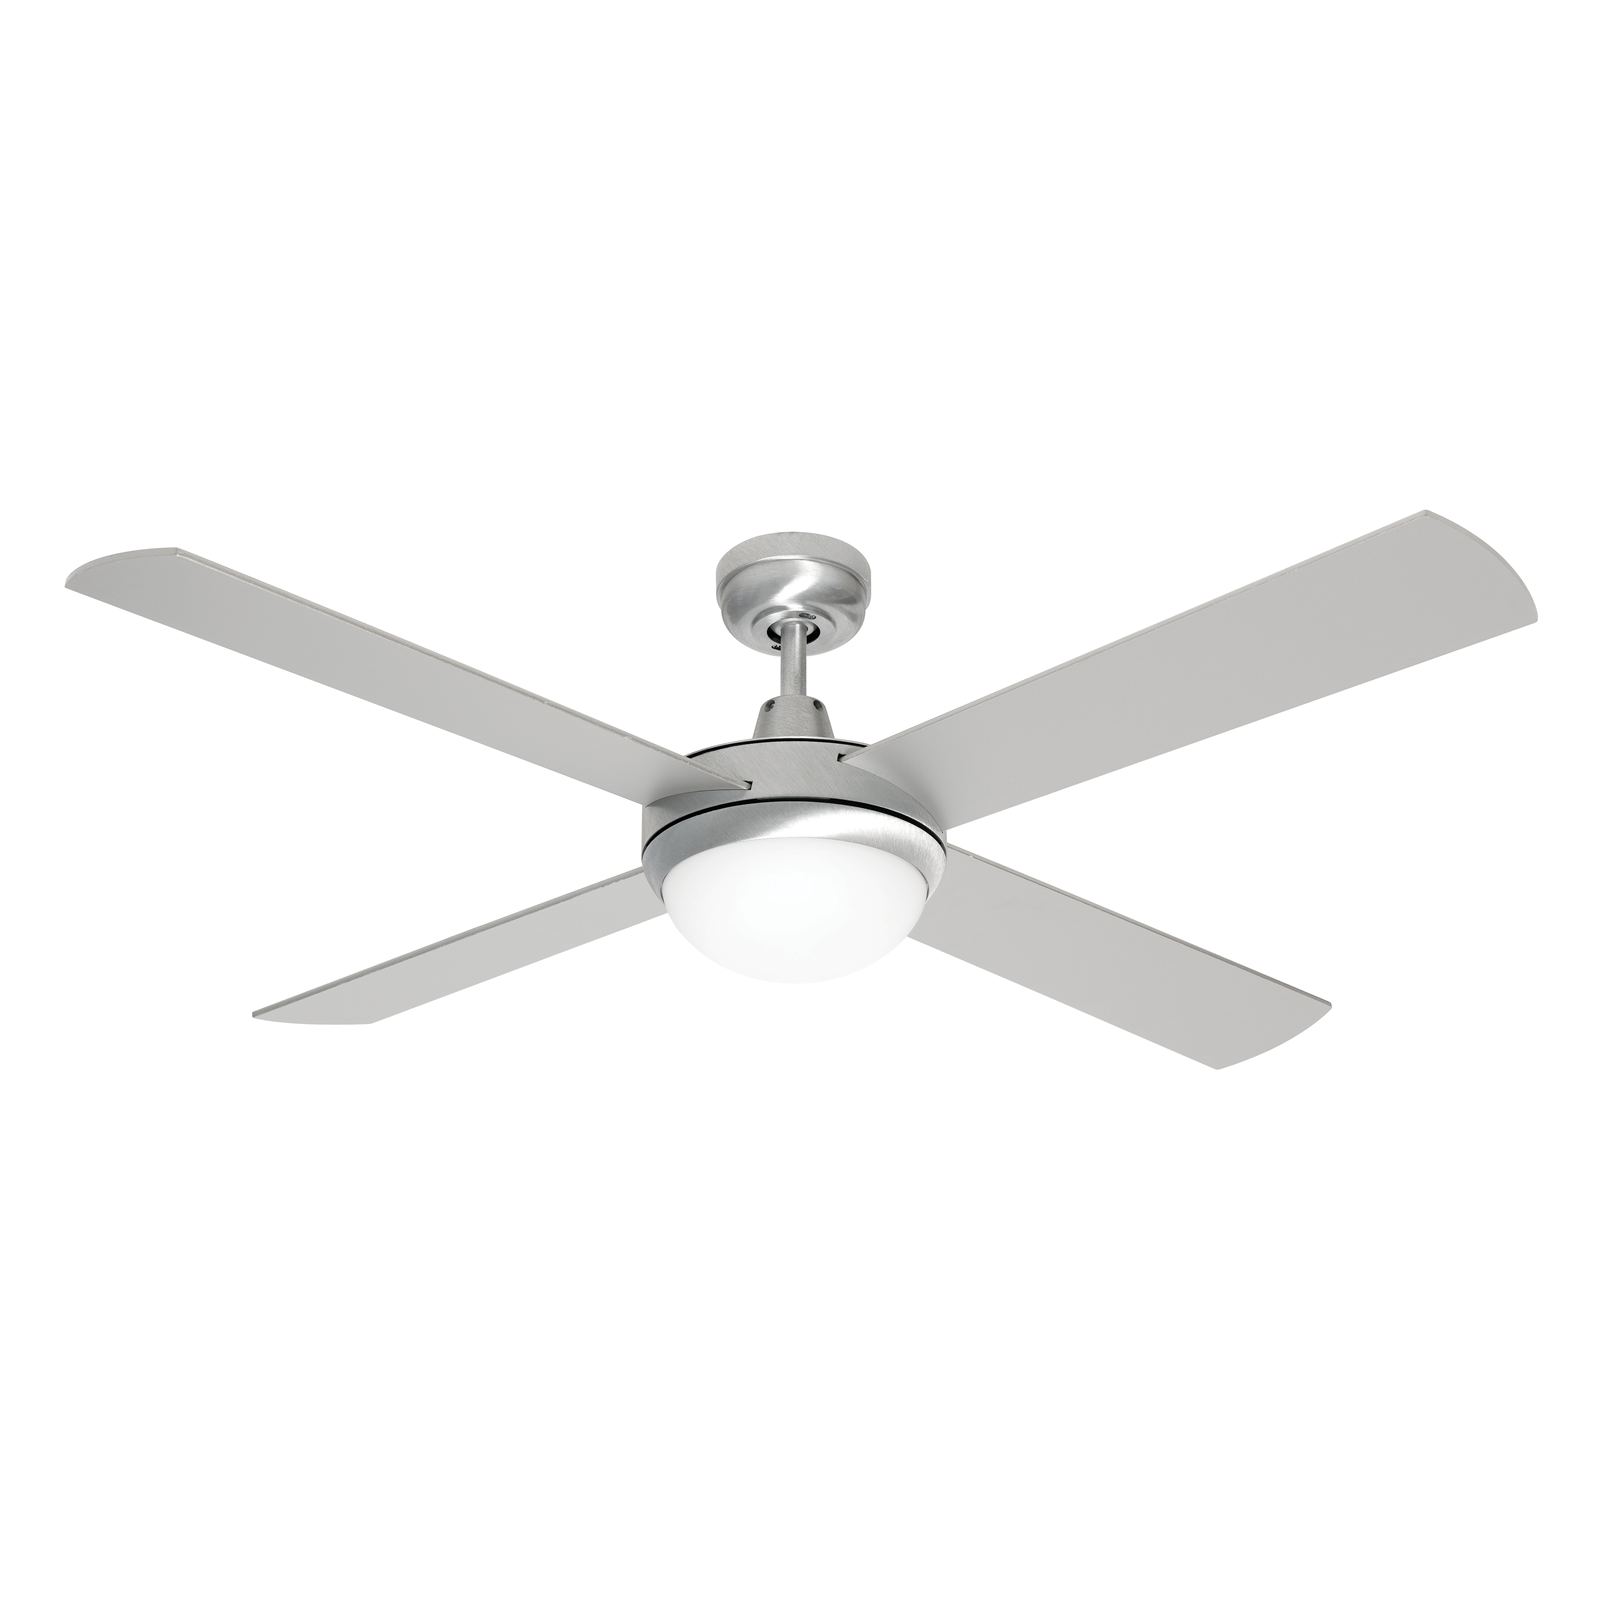 Find Mercator 130cm Brushed Steel 4 Blade Grange Ceiling Fan With Light At Bunnings Warehouse